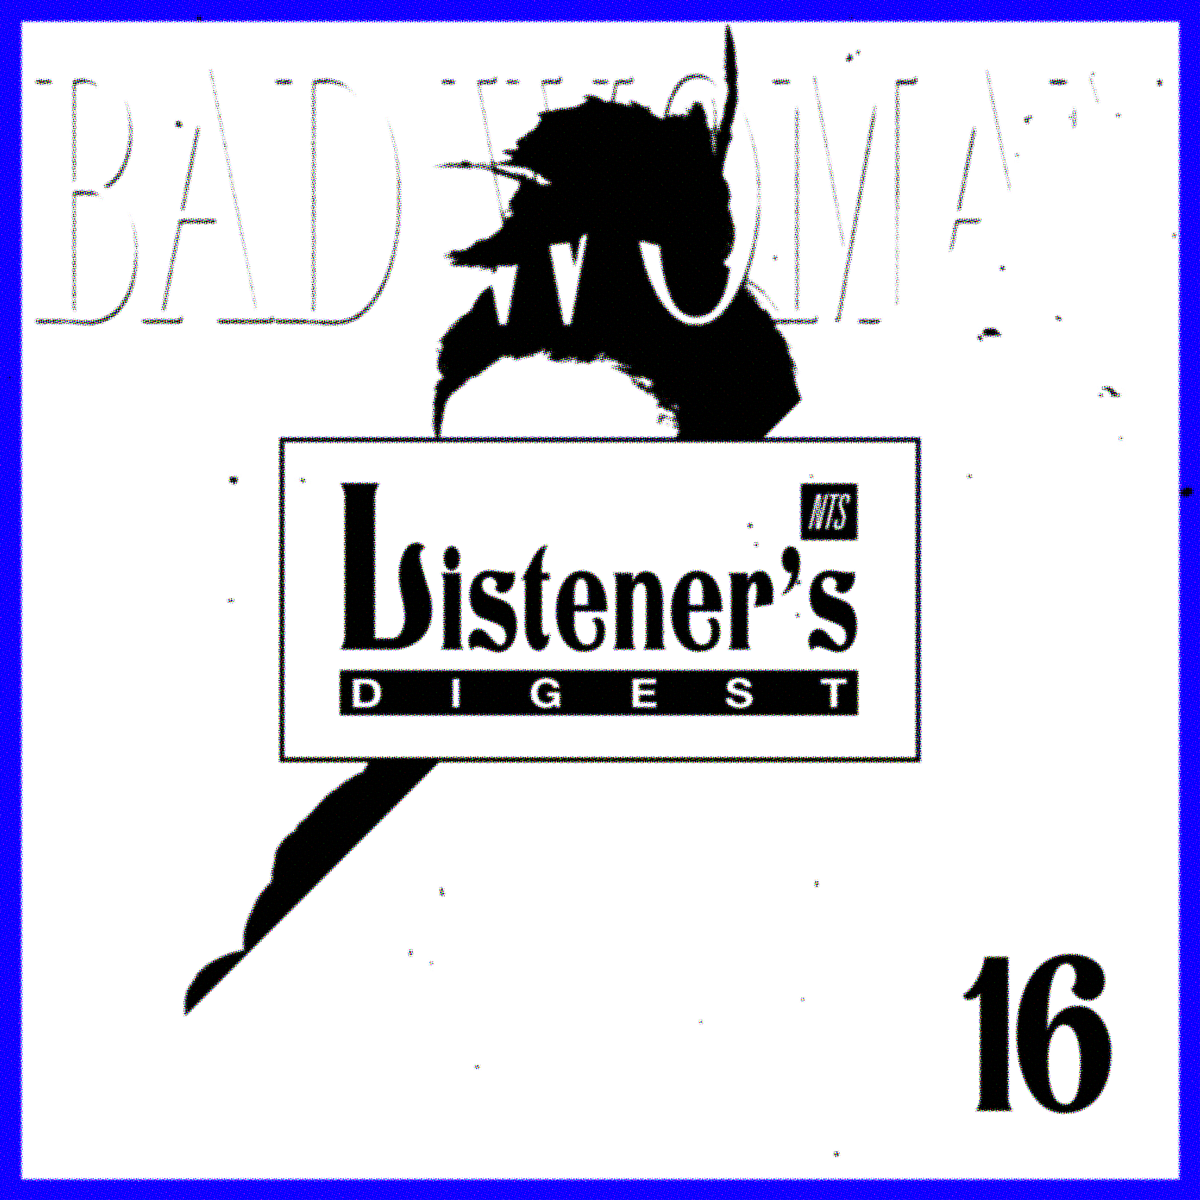 Listeners Digest 16 NTS.png